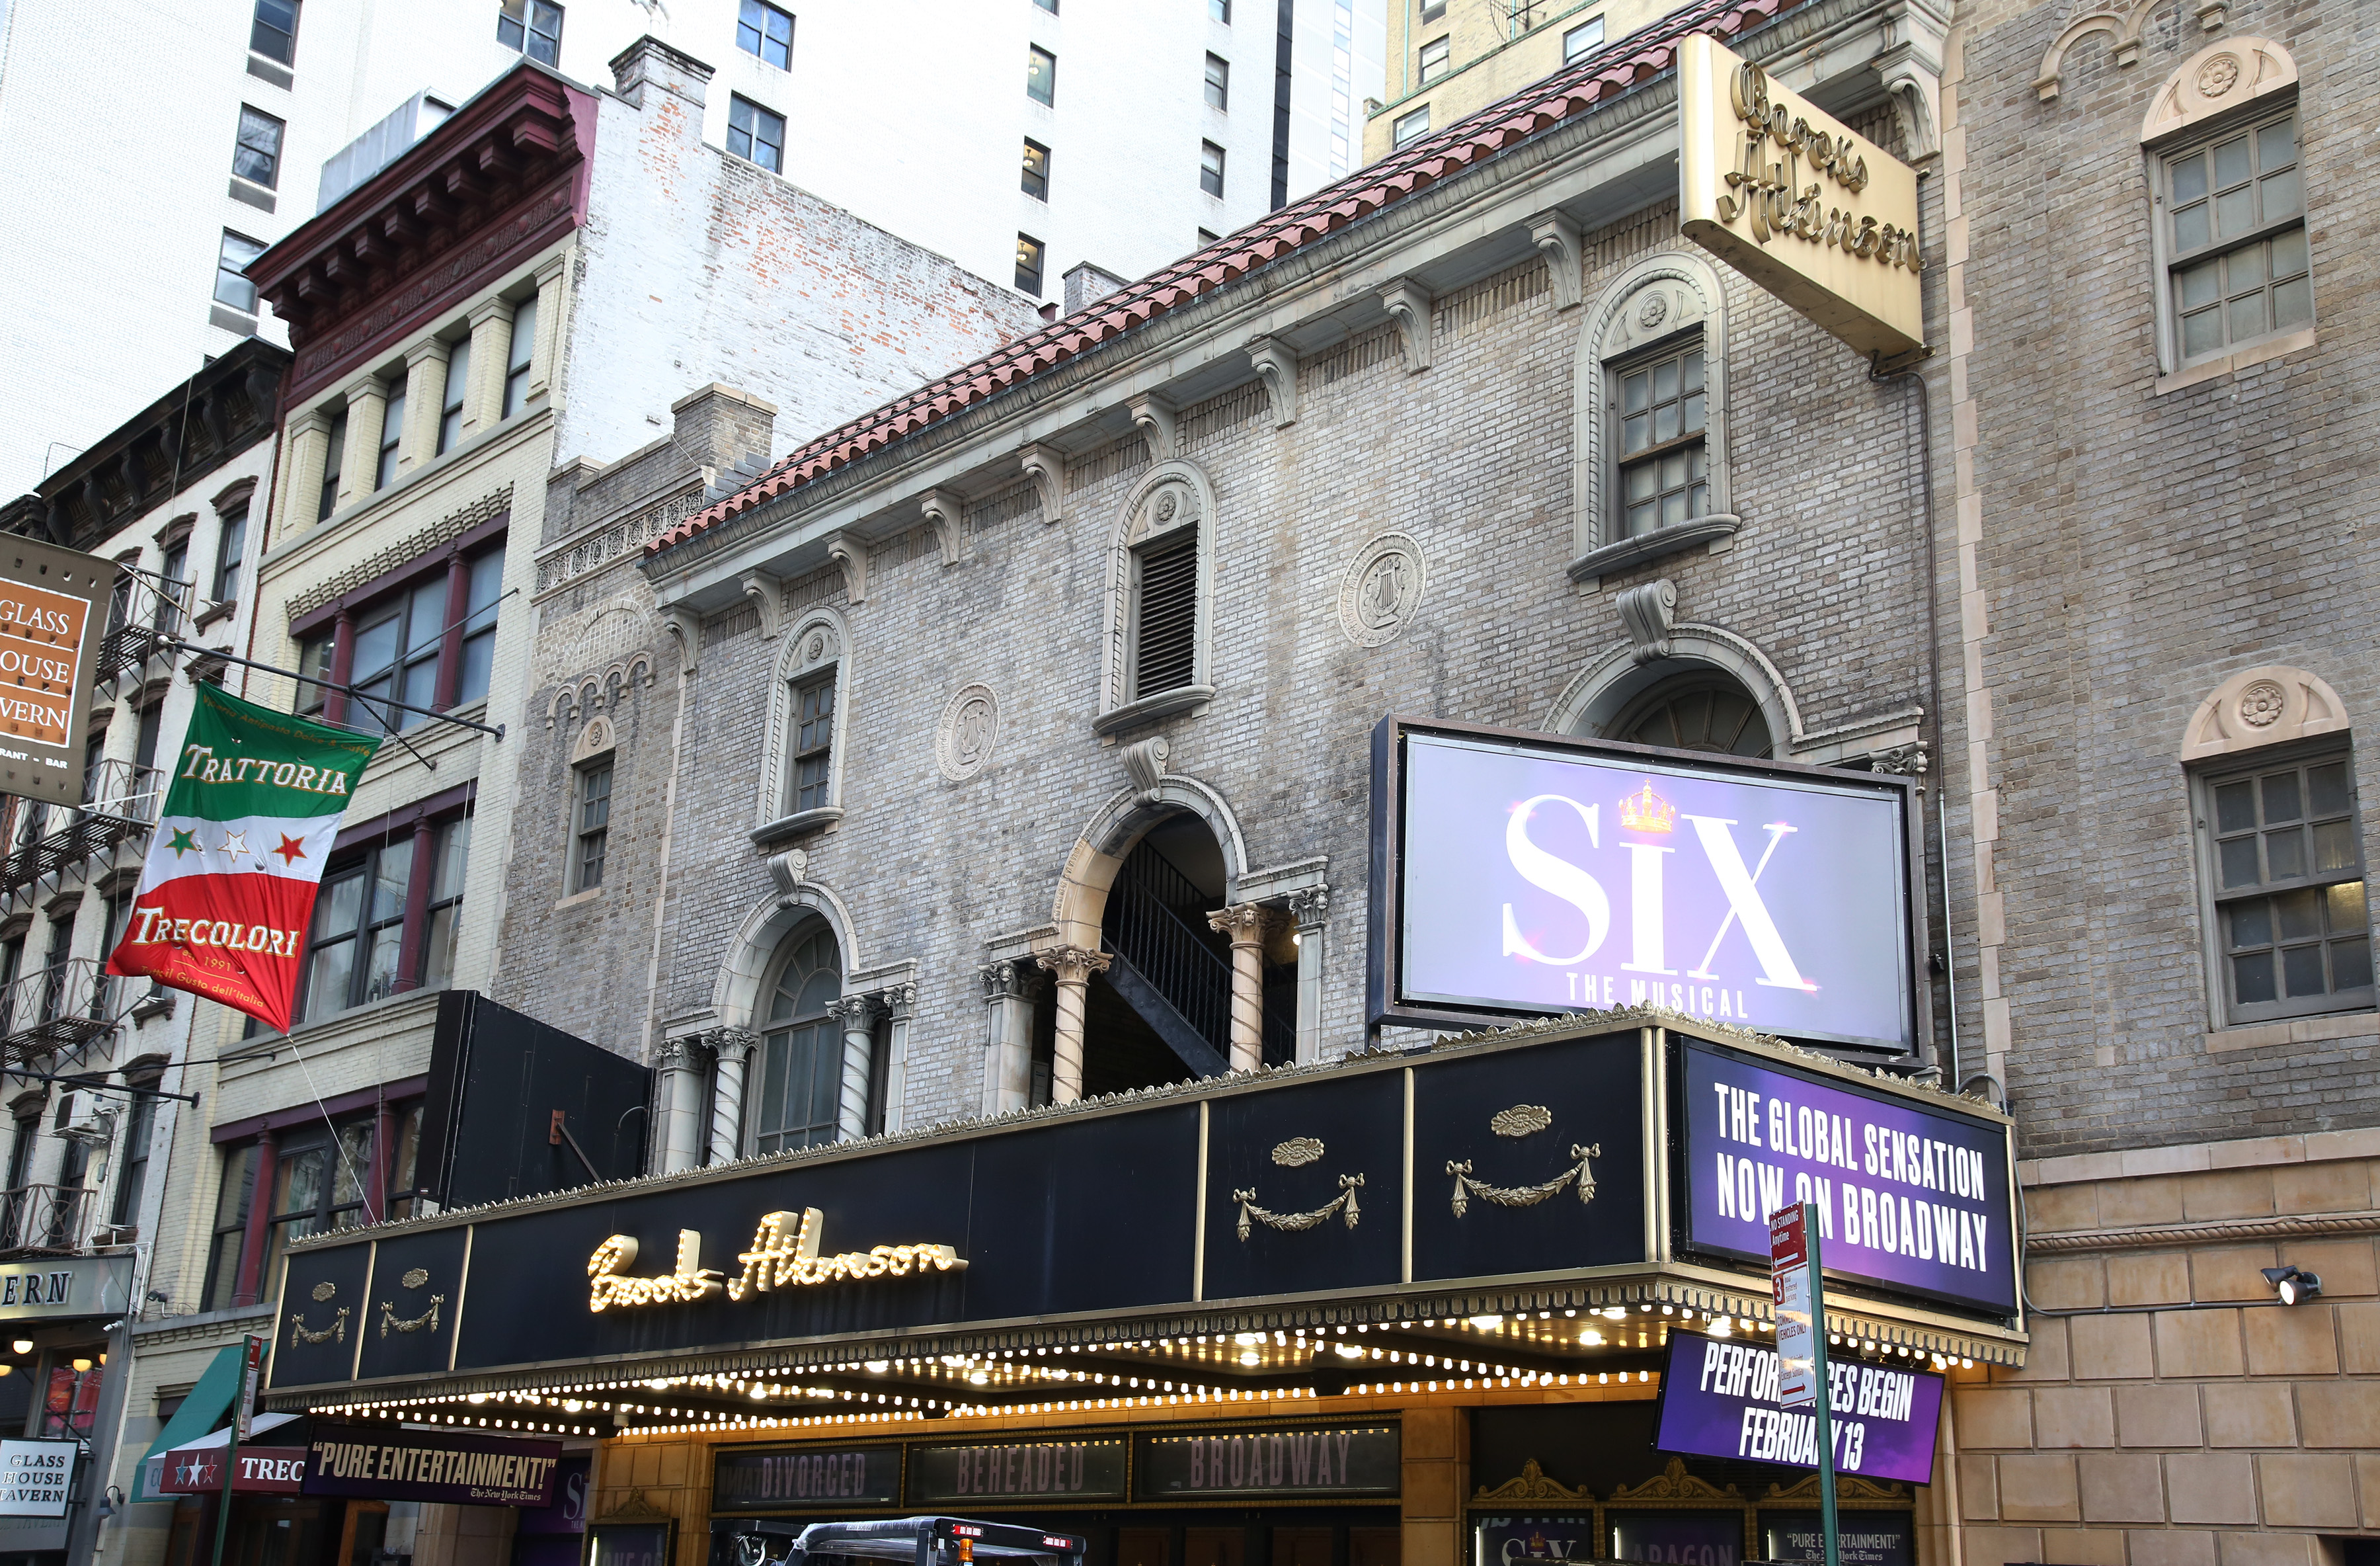 Brooks Atkinson Theatre (Broadway) - Theater Information Marquee